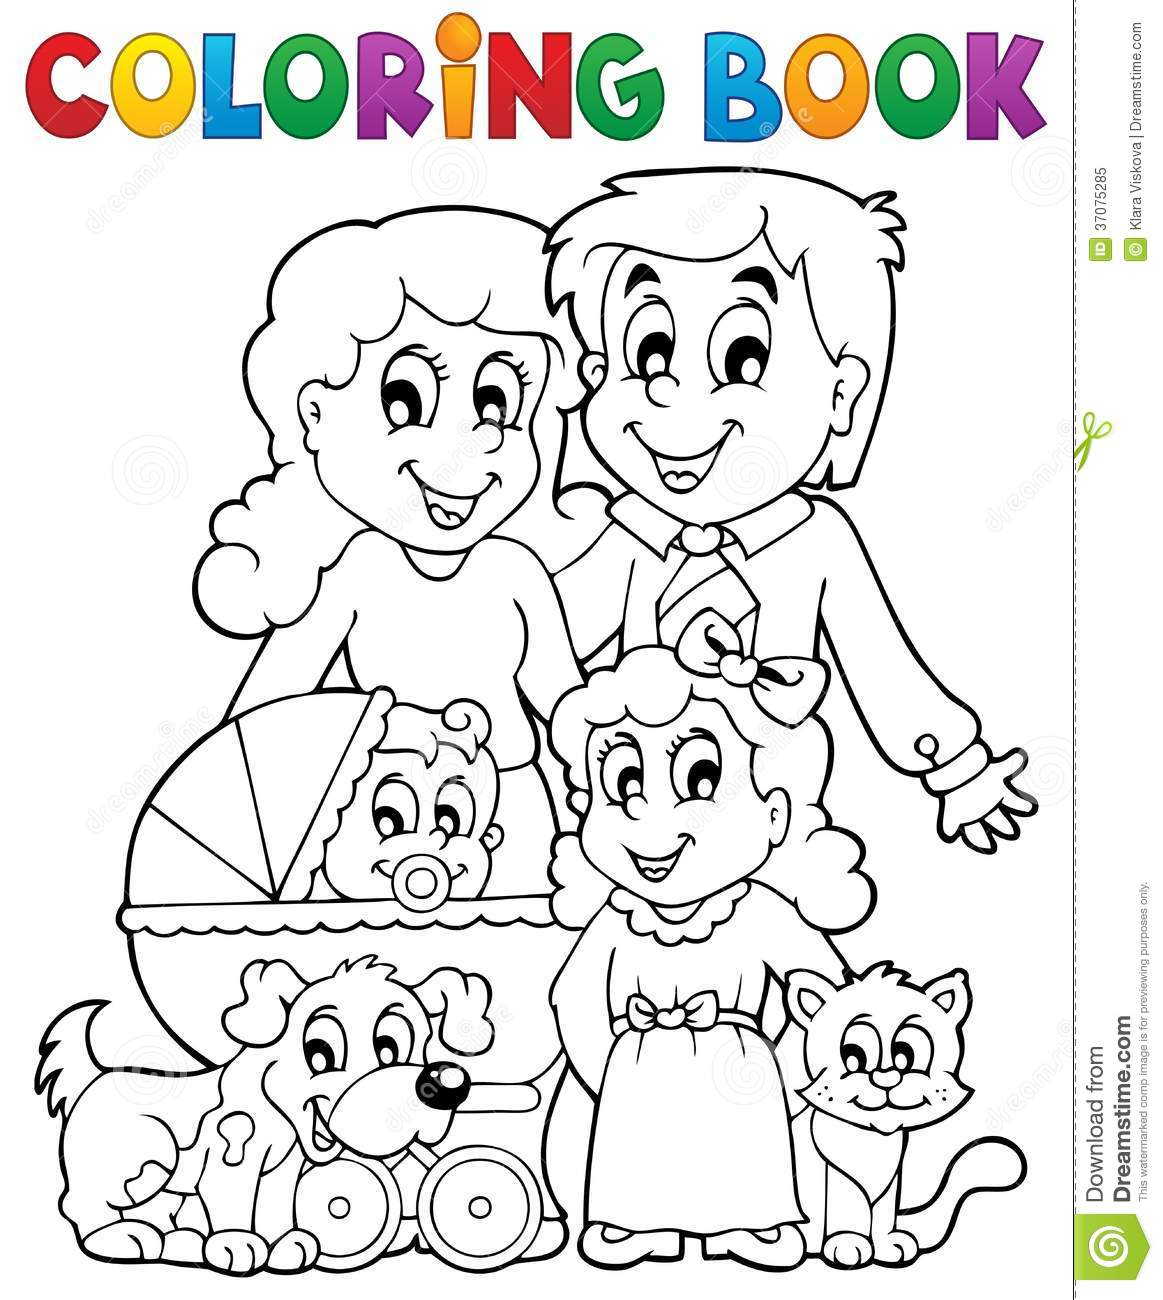 Coloring Book Family Theme Royalty Free Stock Photo